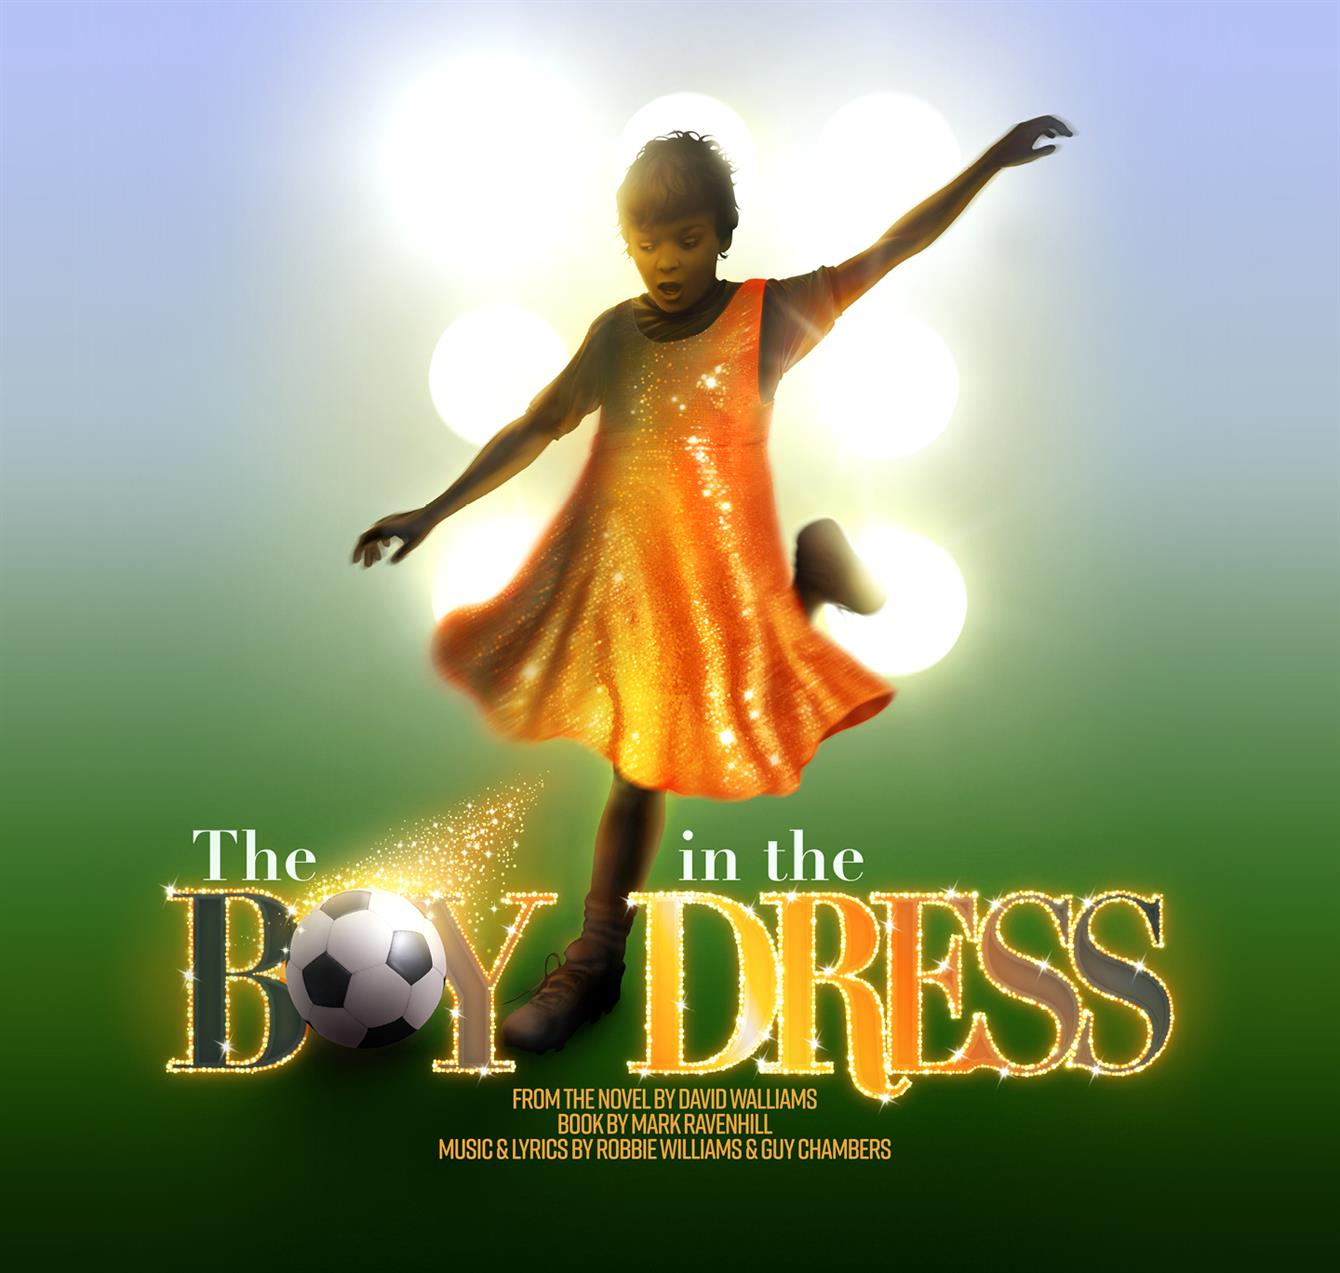 the boy in the dress review